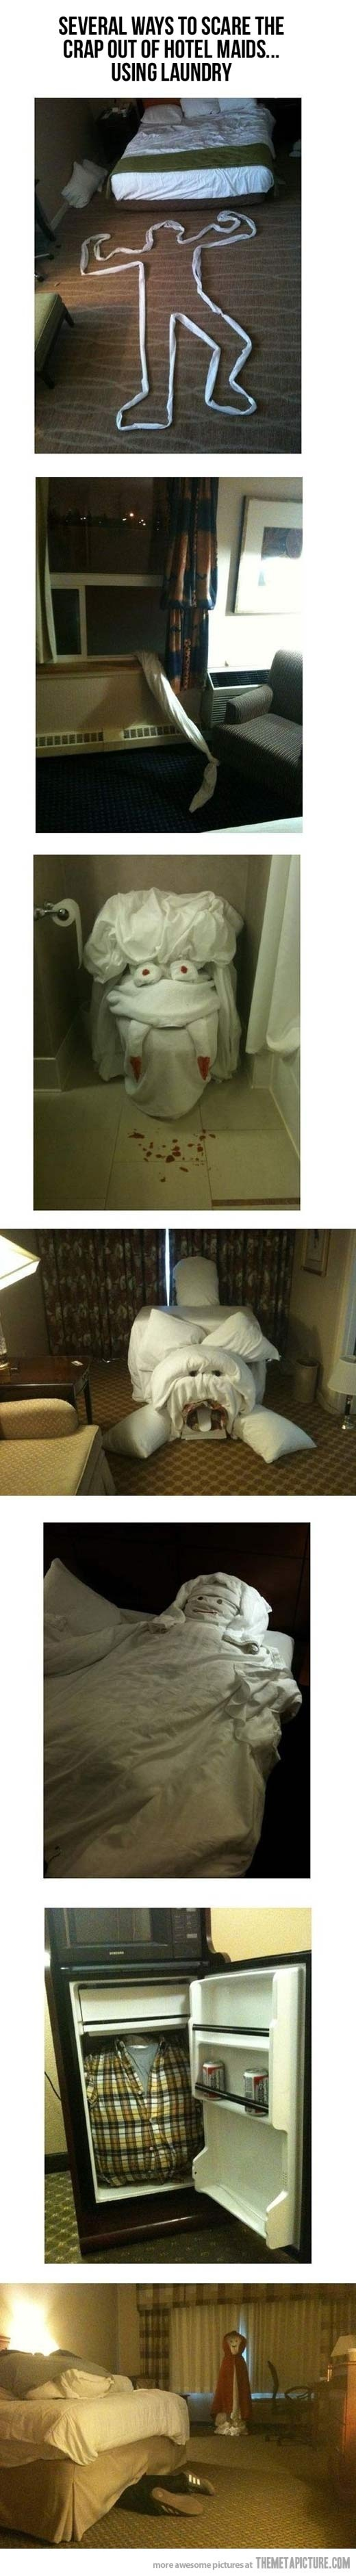 how-to-scare-the-crap-out-of-hotel-maids-thumb